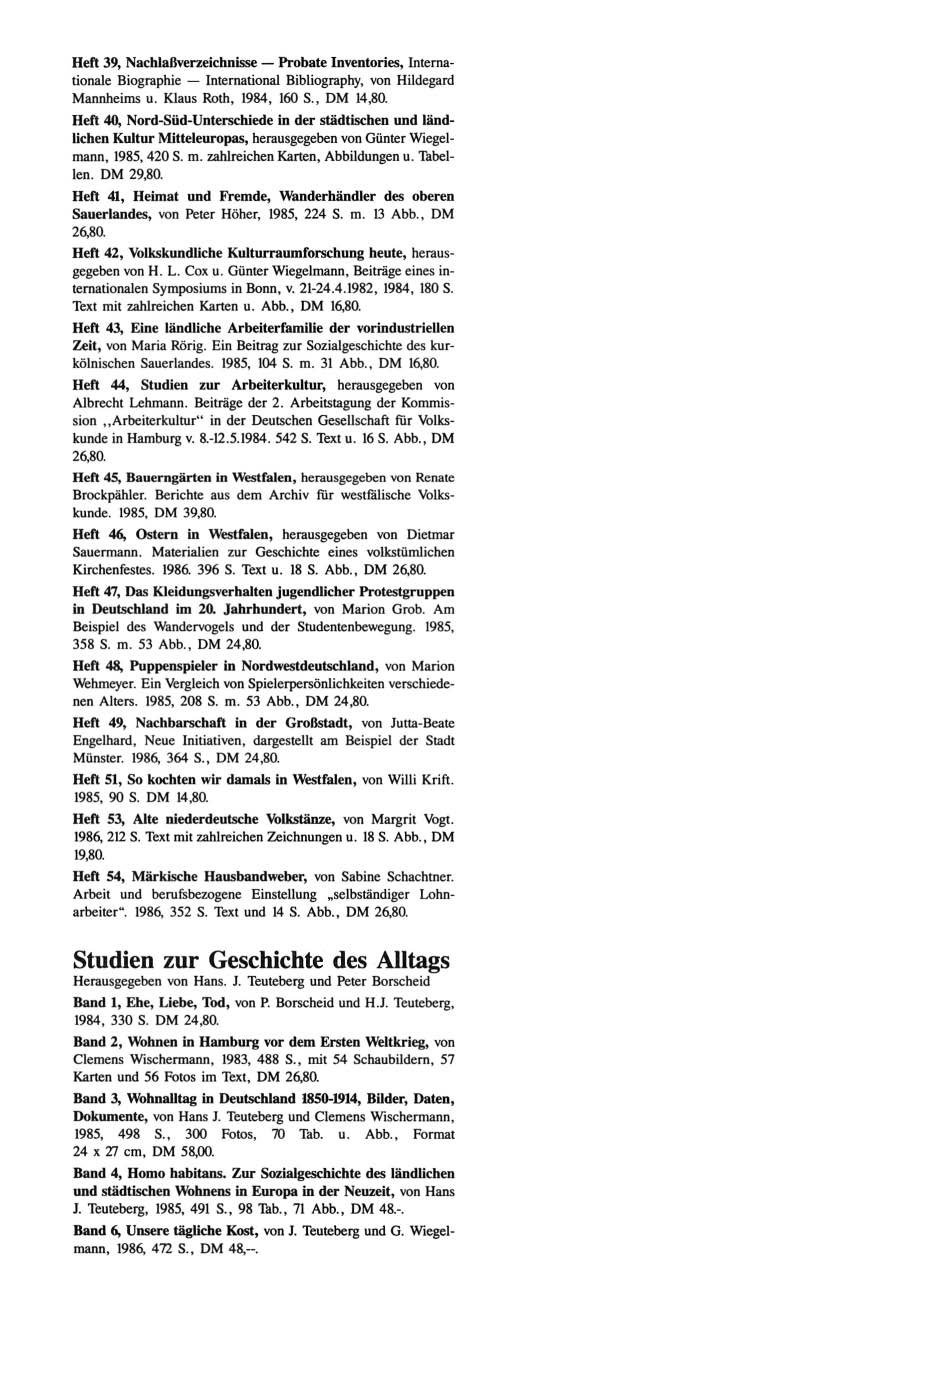 Heft 39, Nachlaßverzeichnisse - Probate Inventories, Internationale Biographie - International Bibliography, von Hildegard Mannheims u. Klaus Roth, 1984, 160 S., DM 14,80.